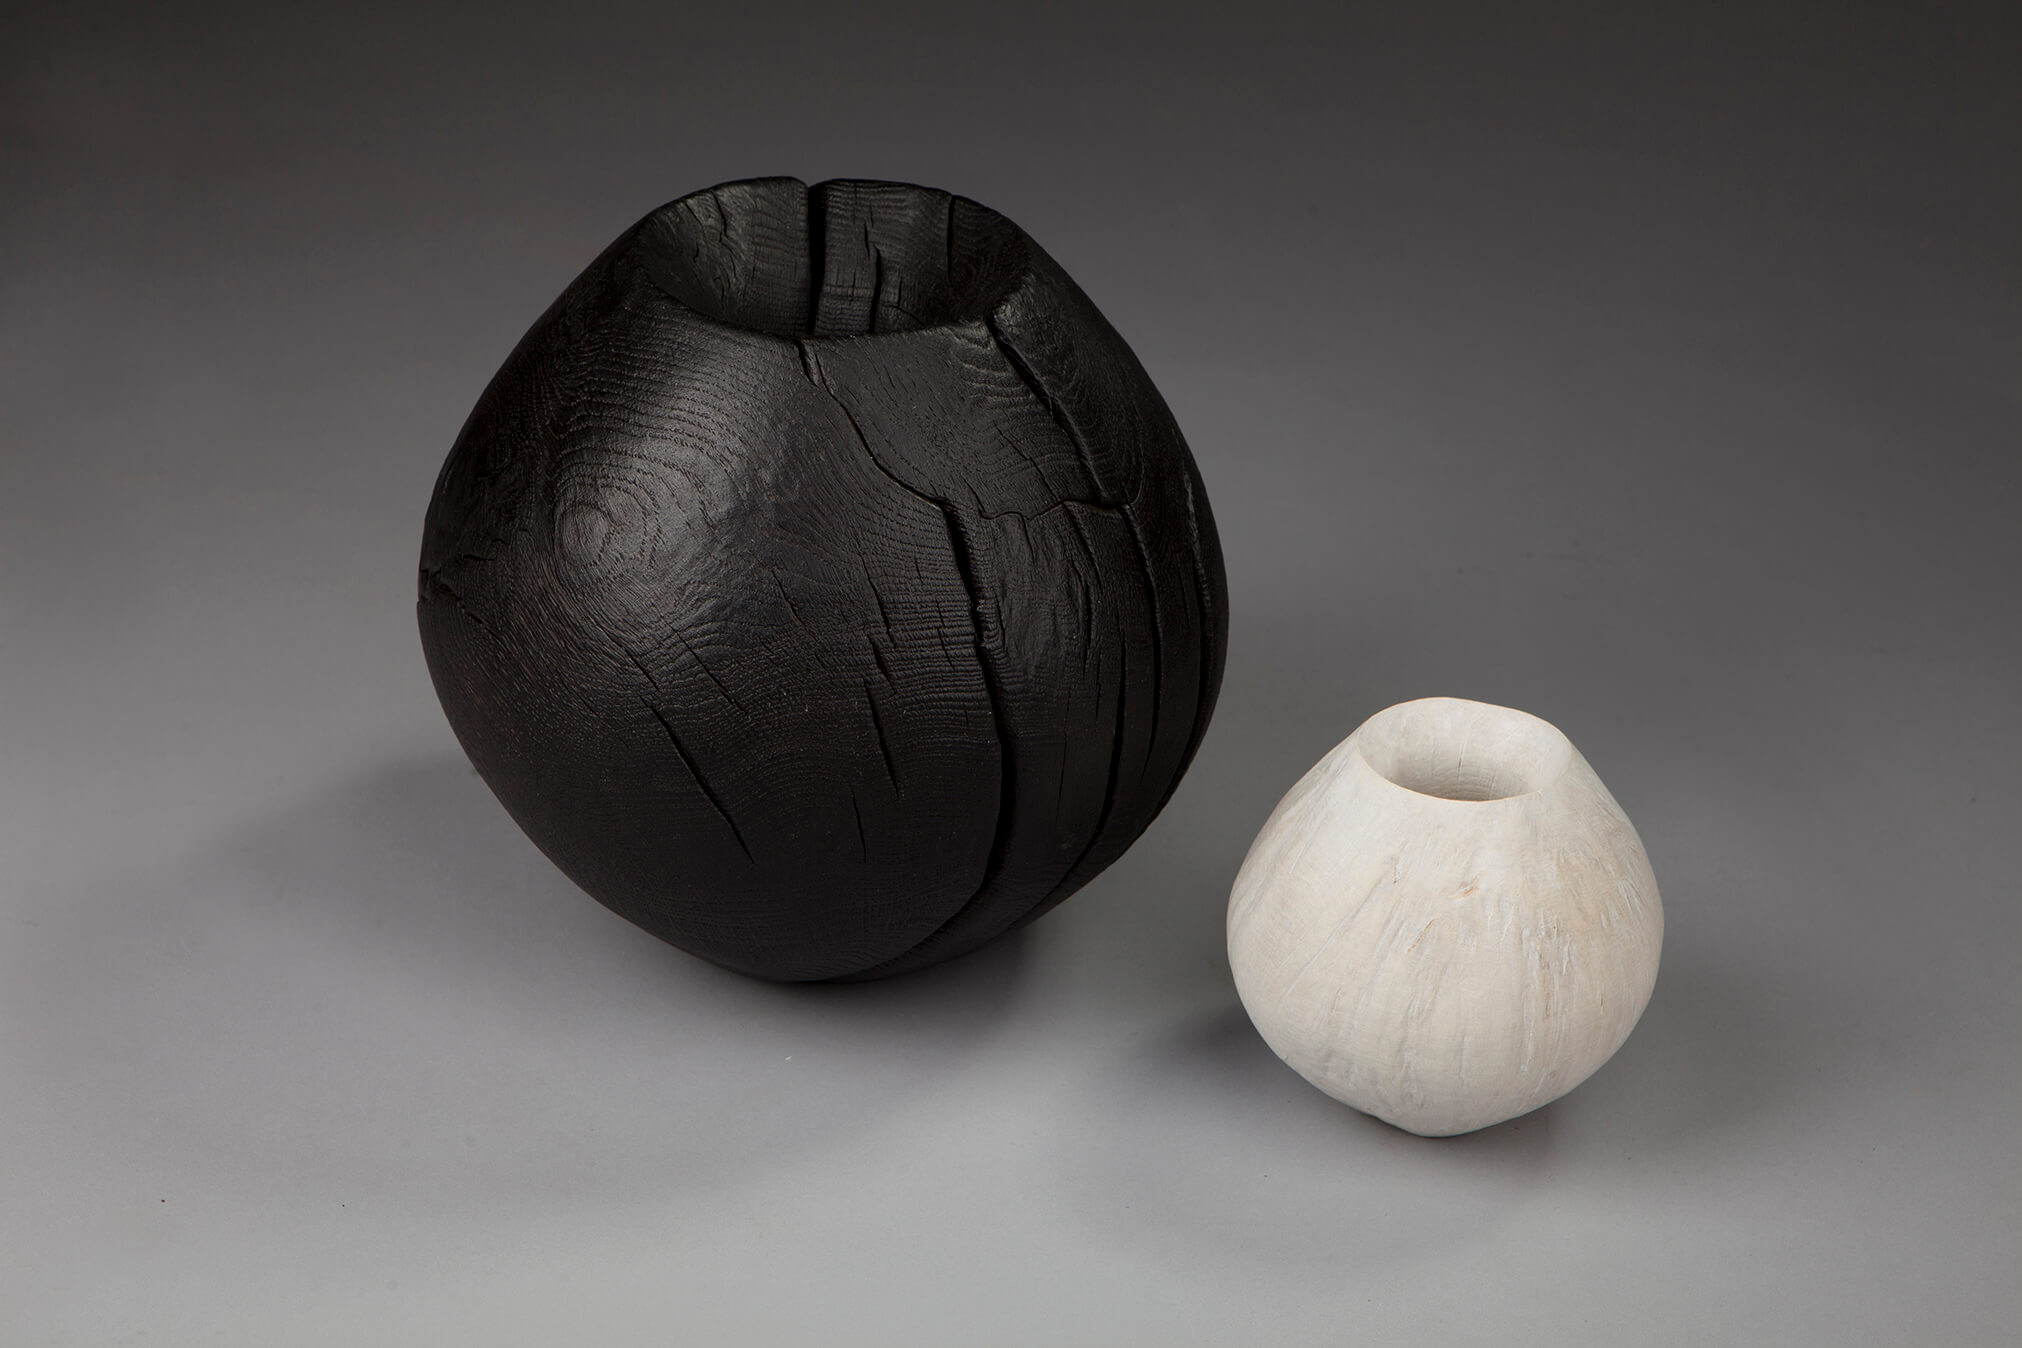 Scorched Sphere and Bleached Sphere, 2014